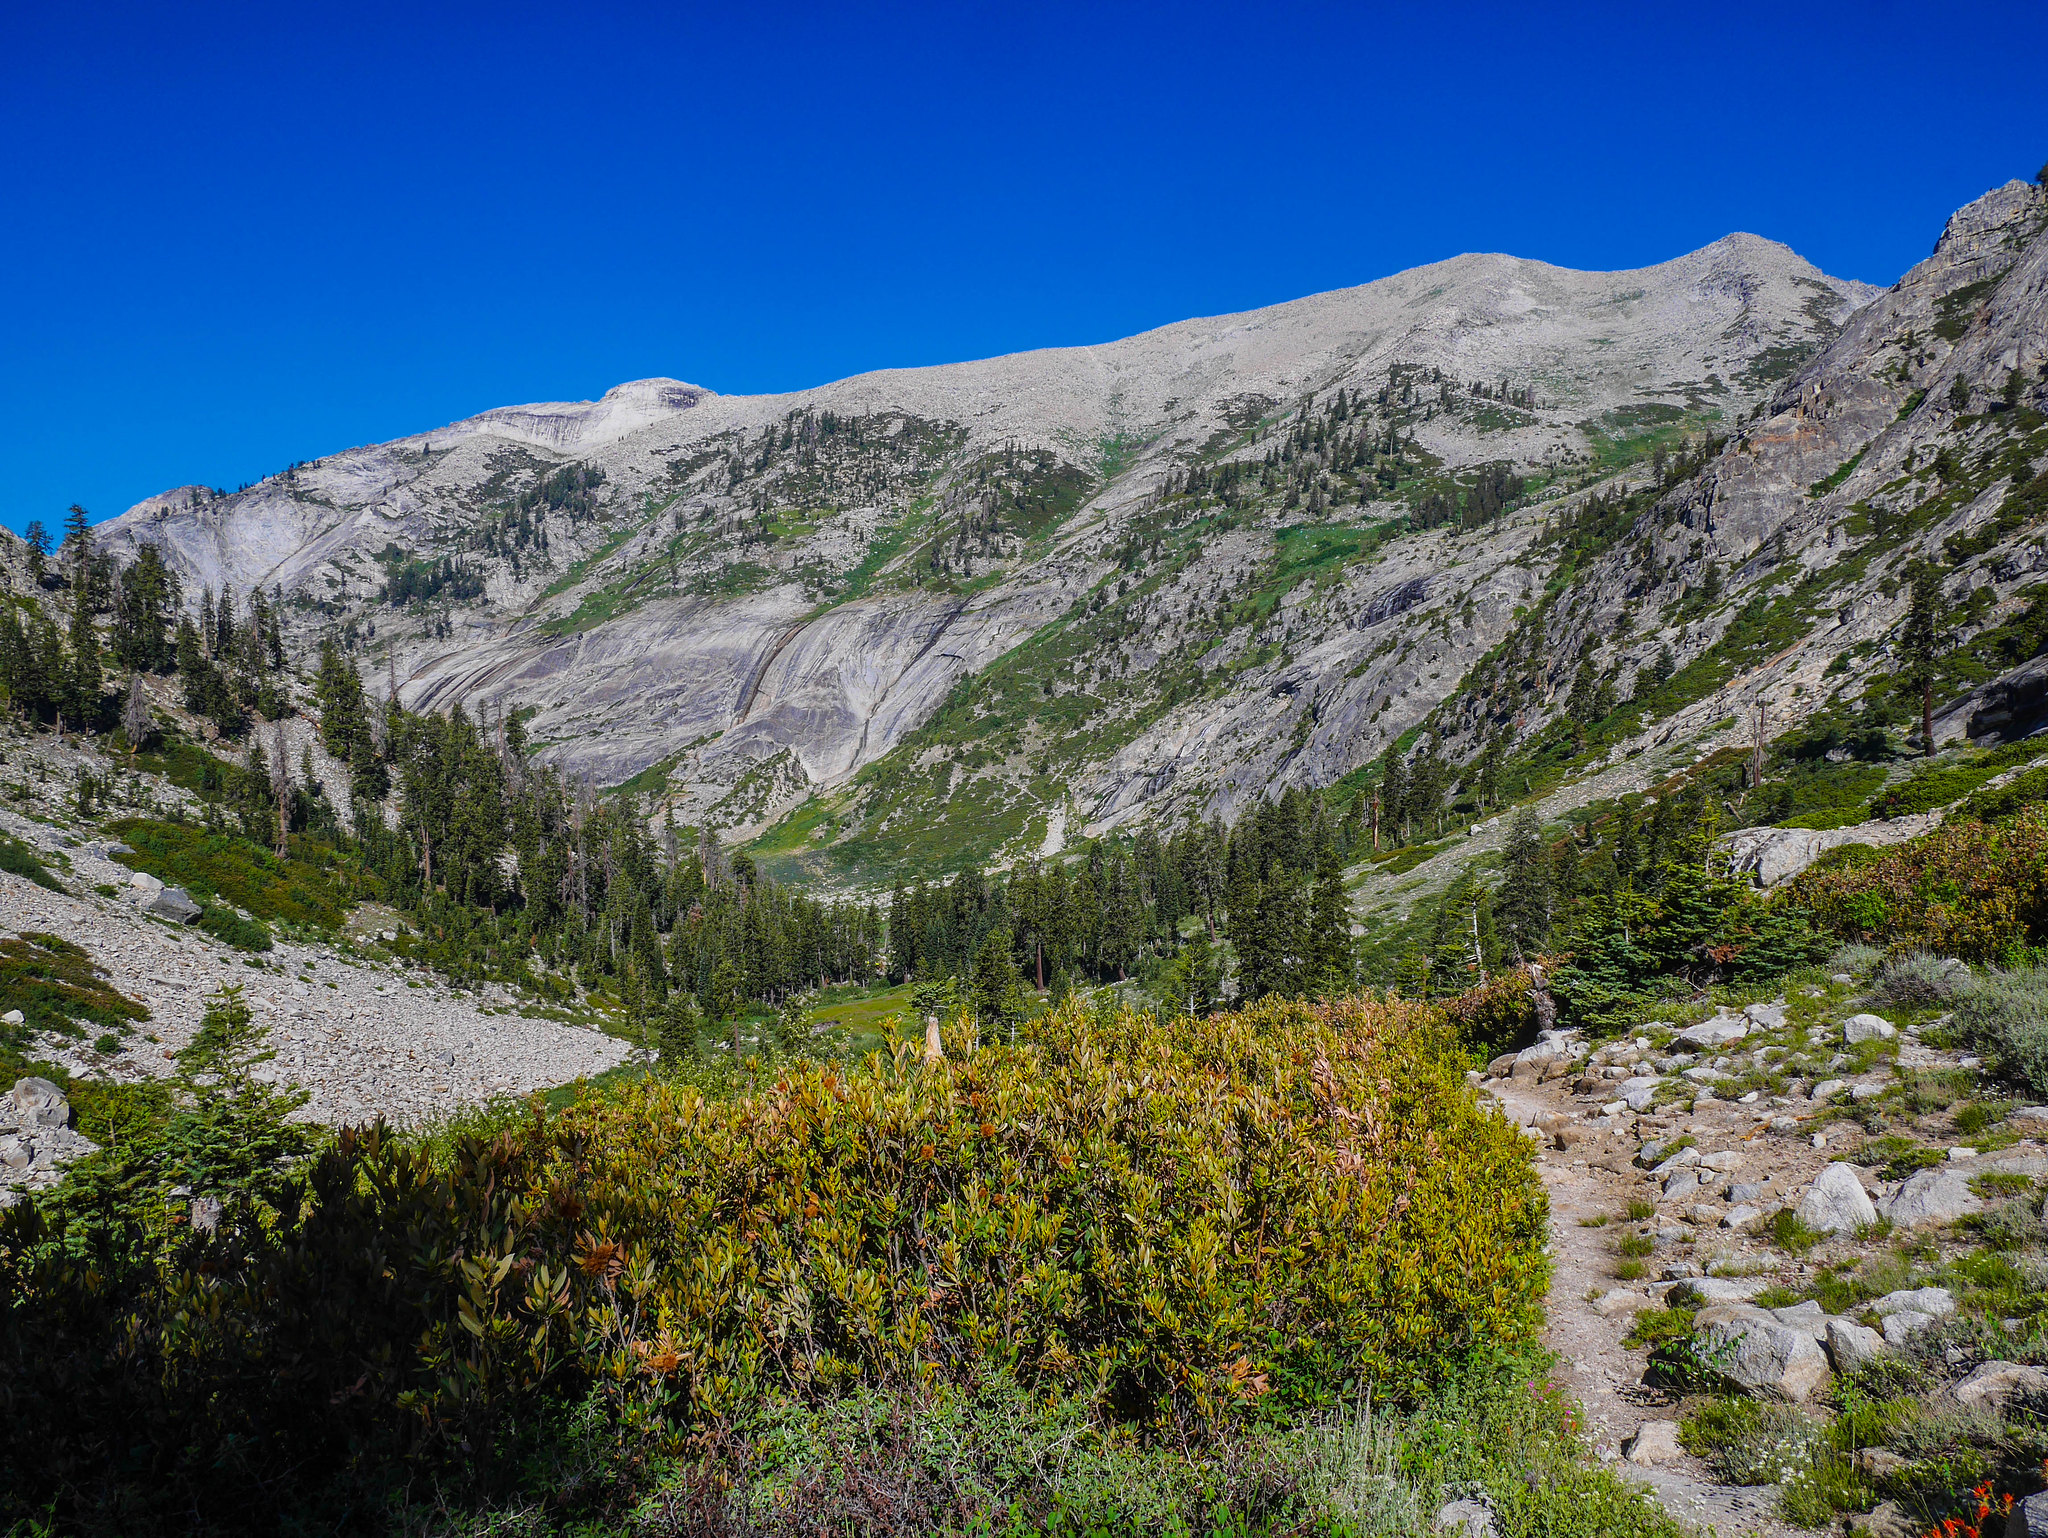 Descending to Elizabeth Pass junction